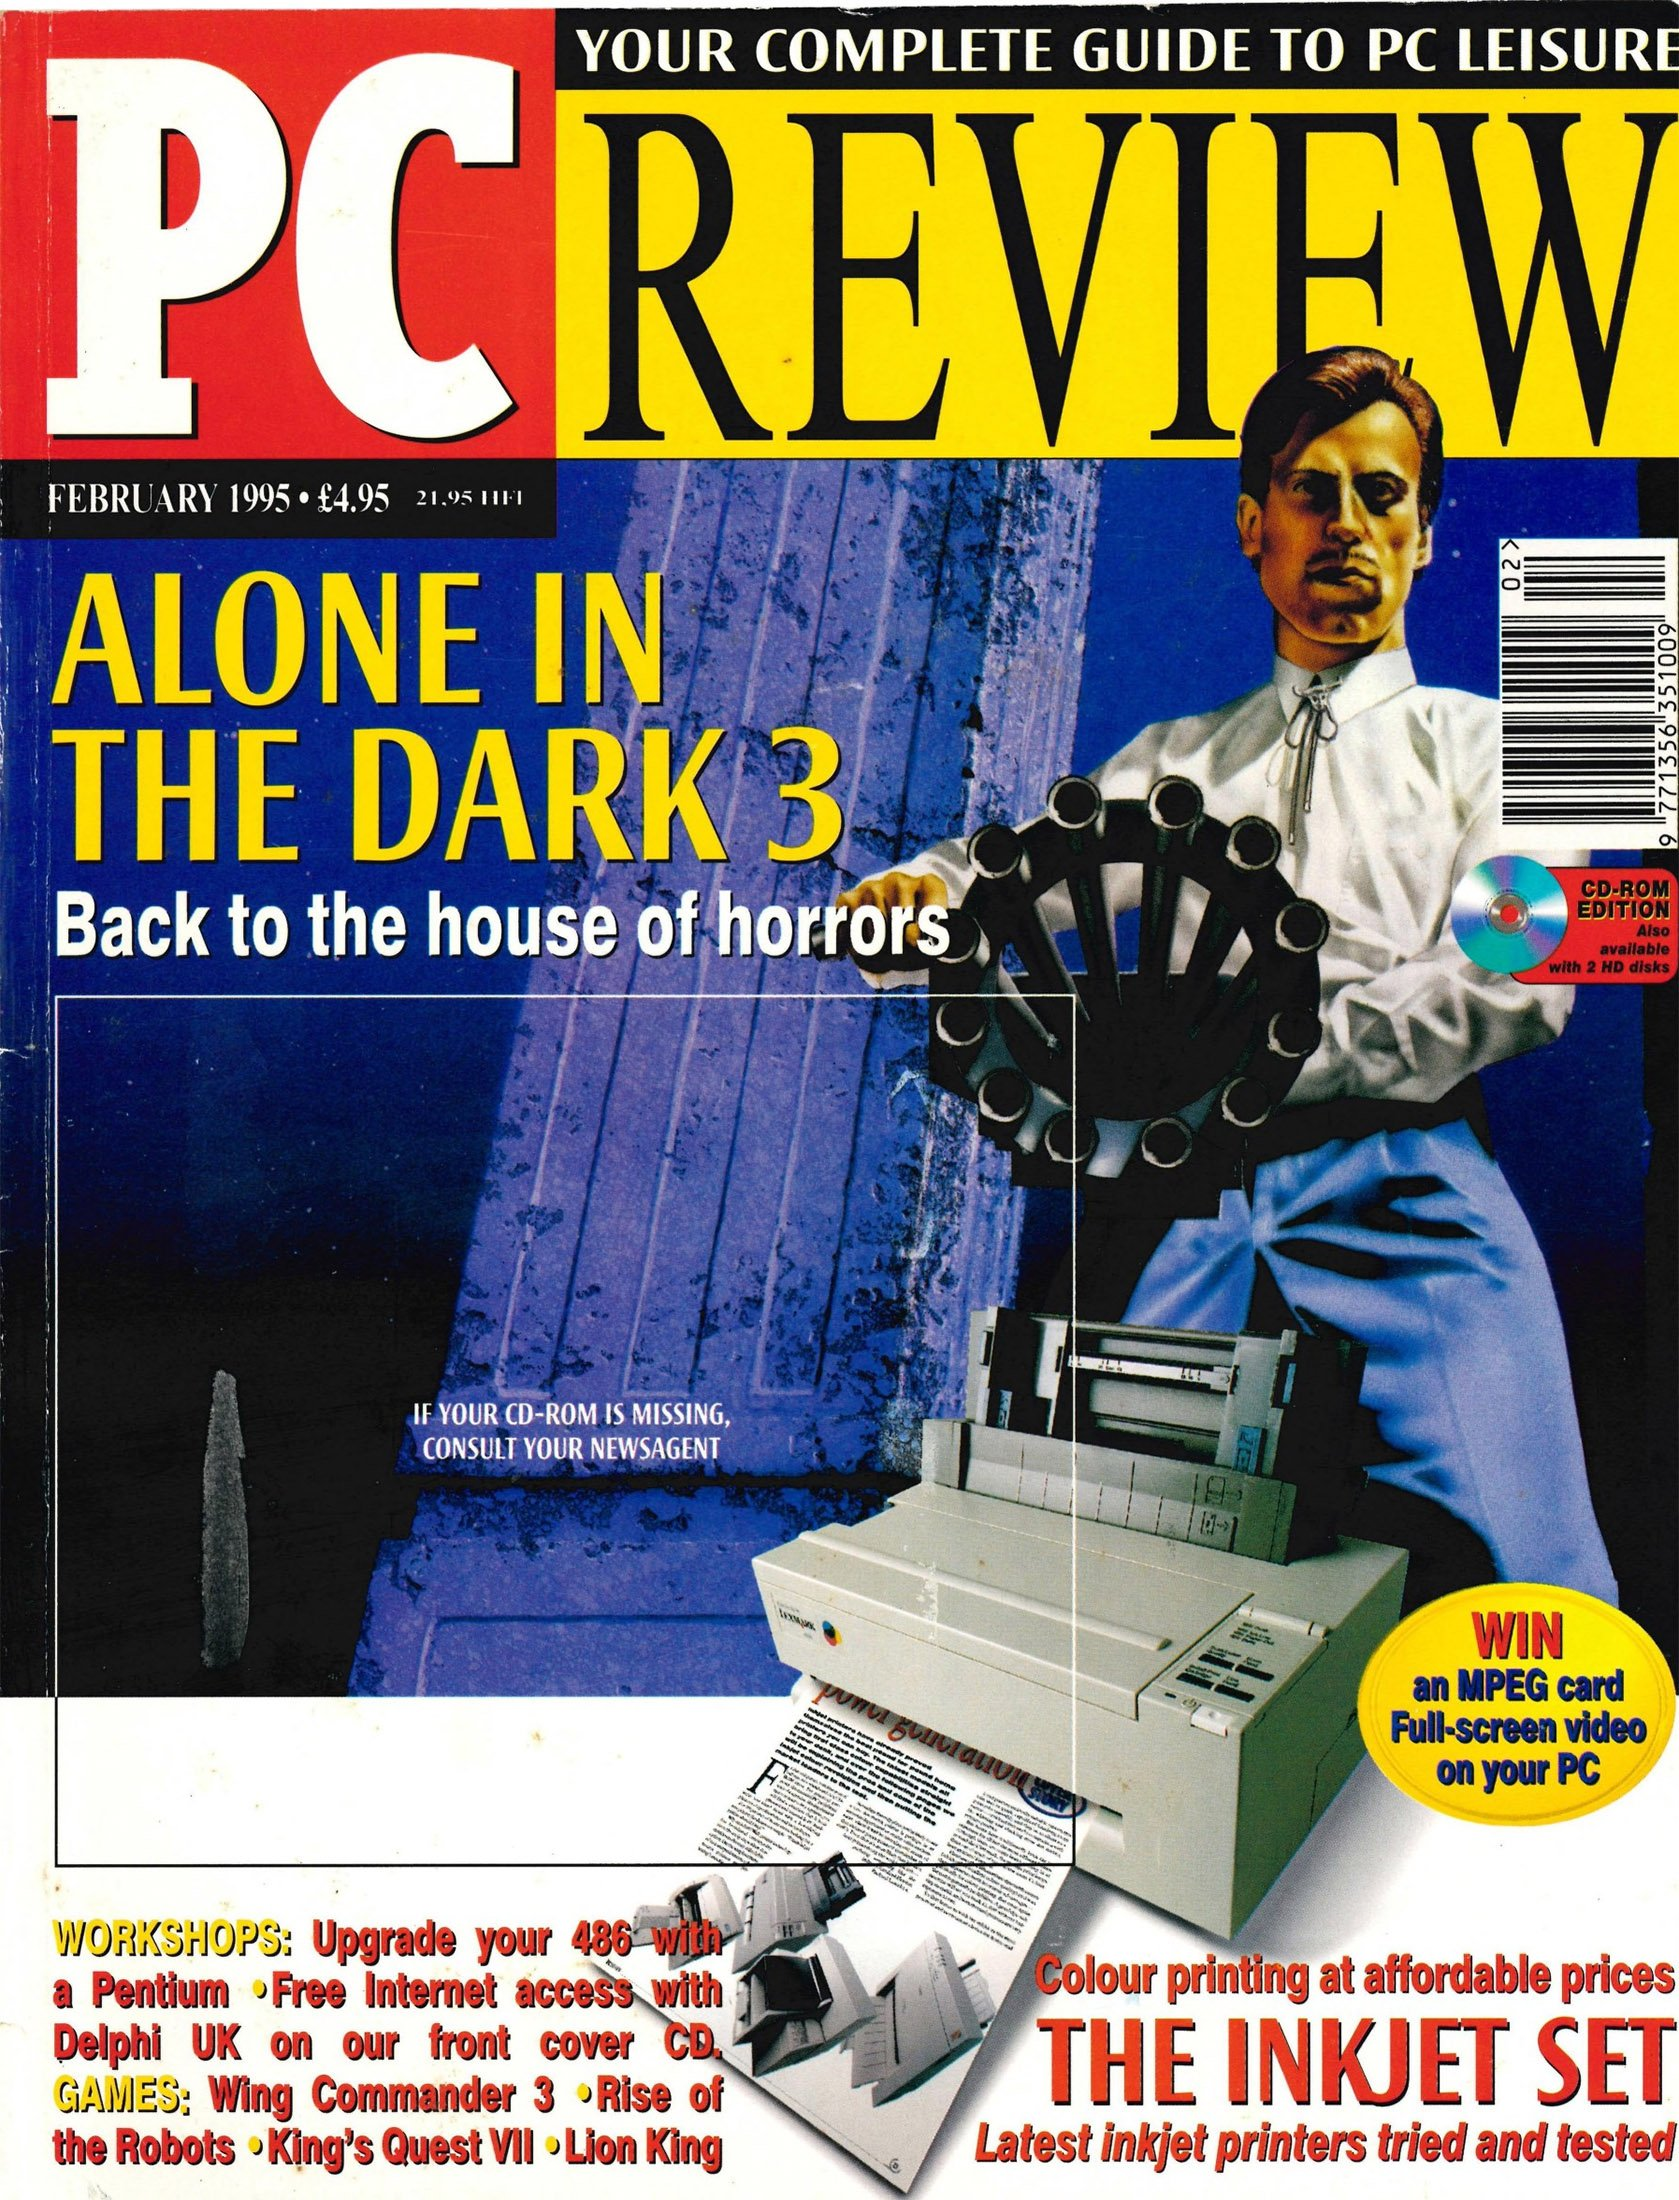 PC Review Issue 40 (February 1995)